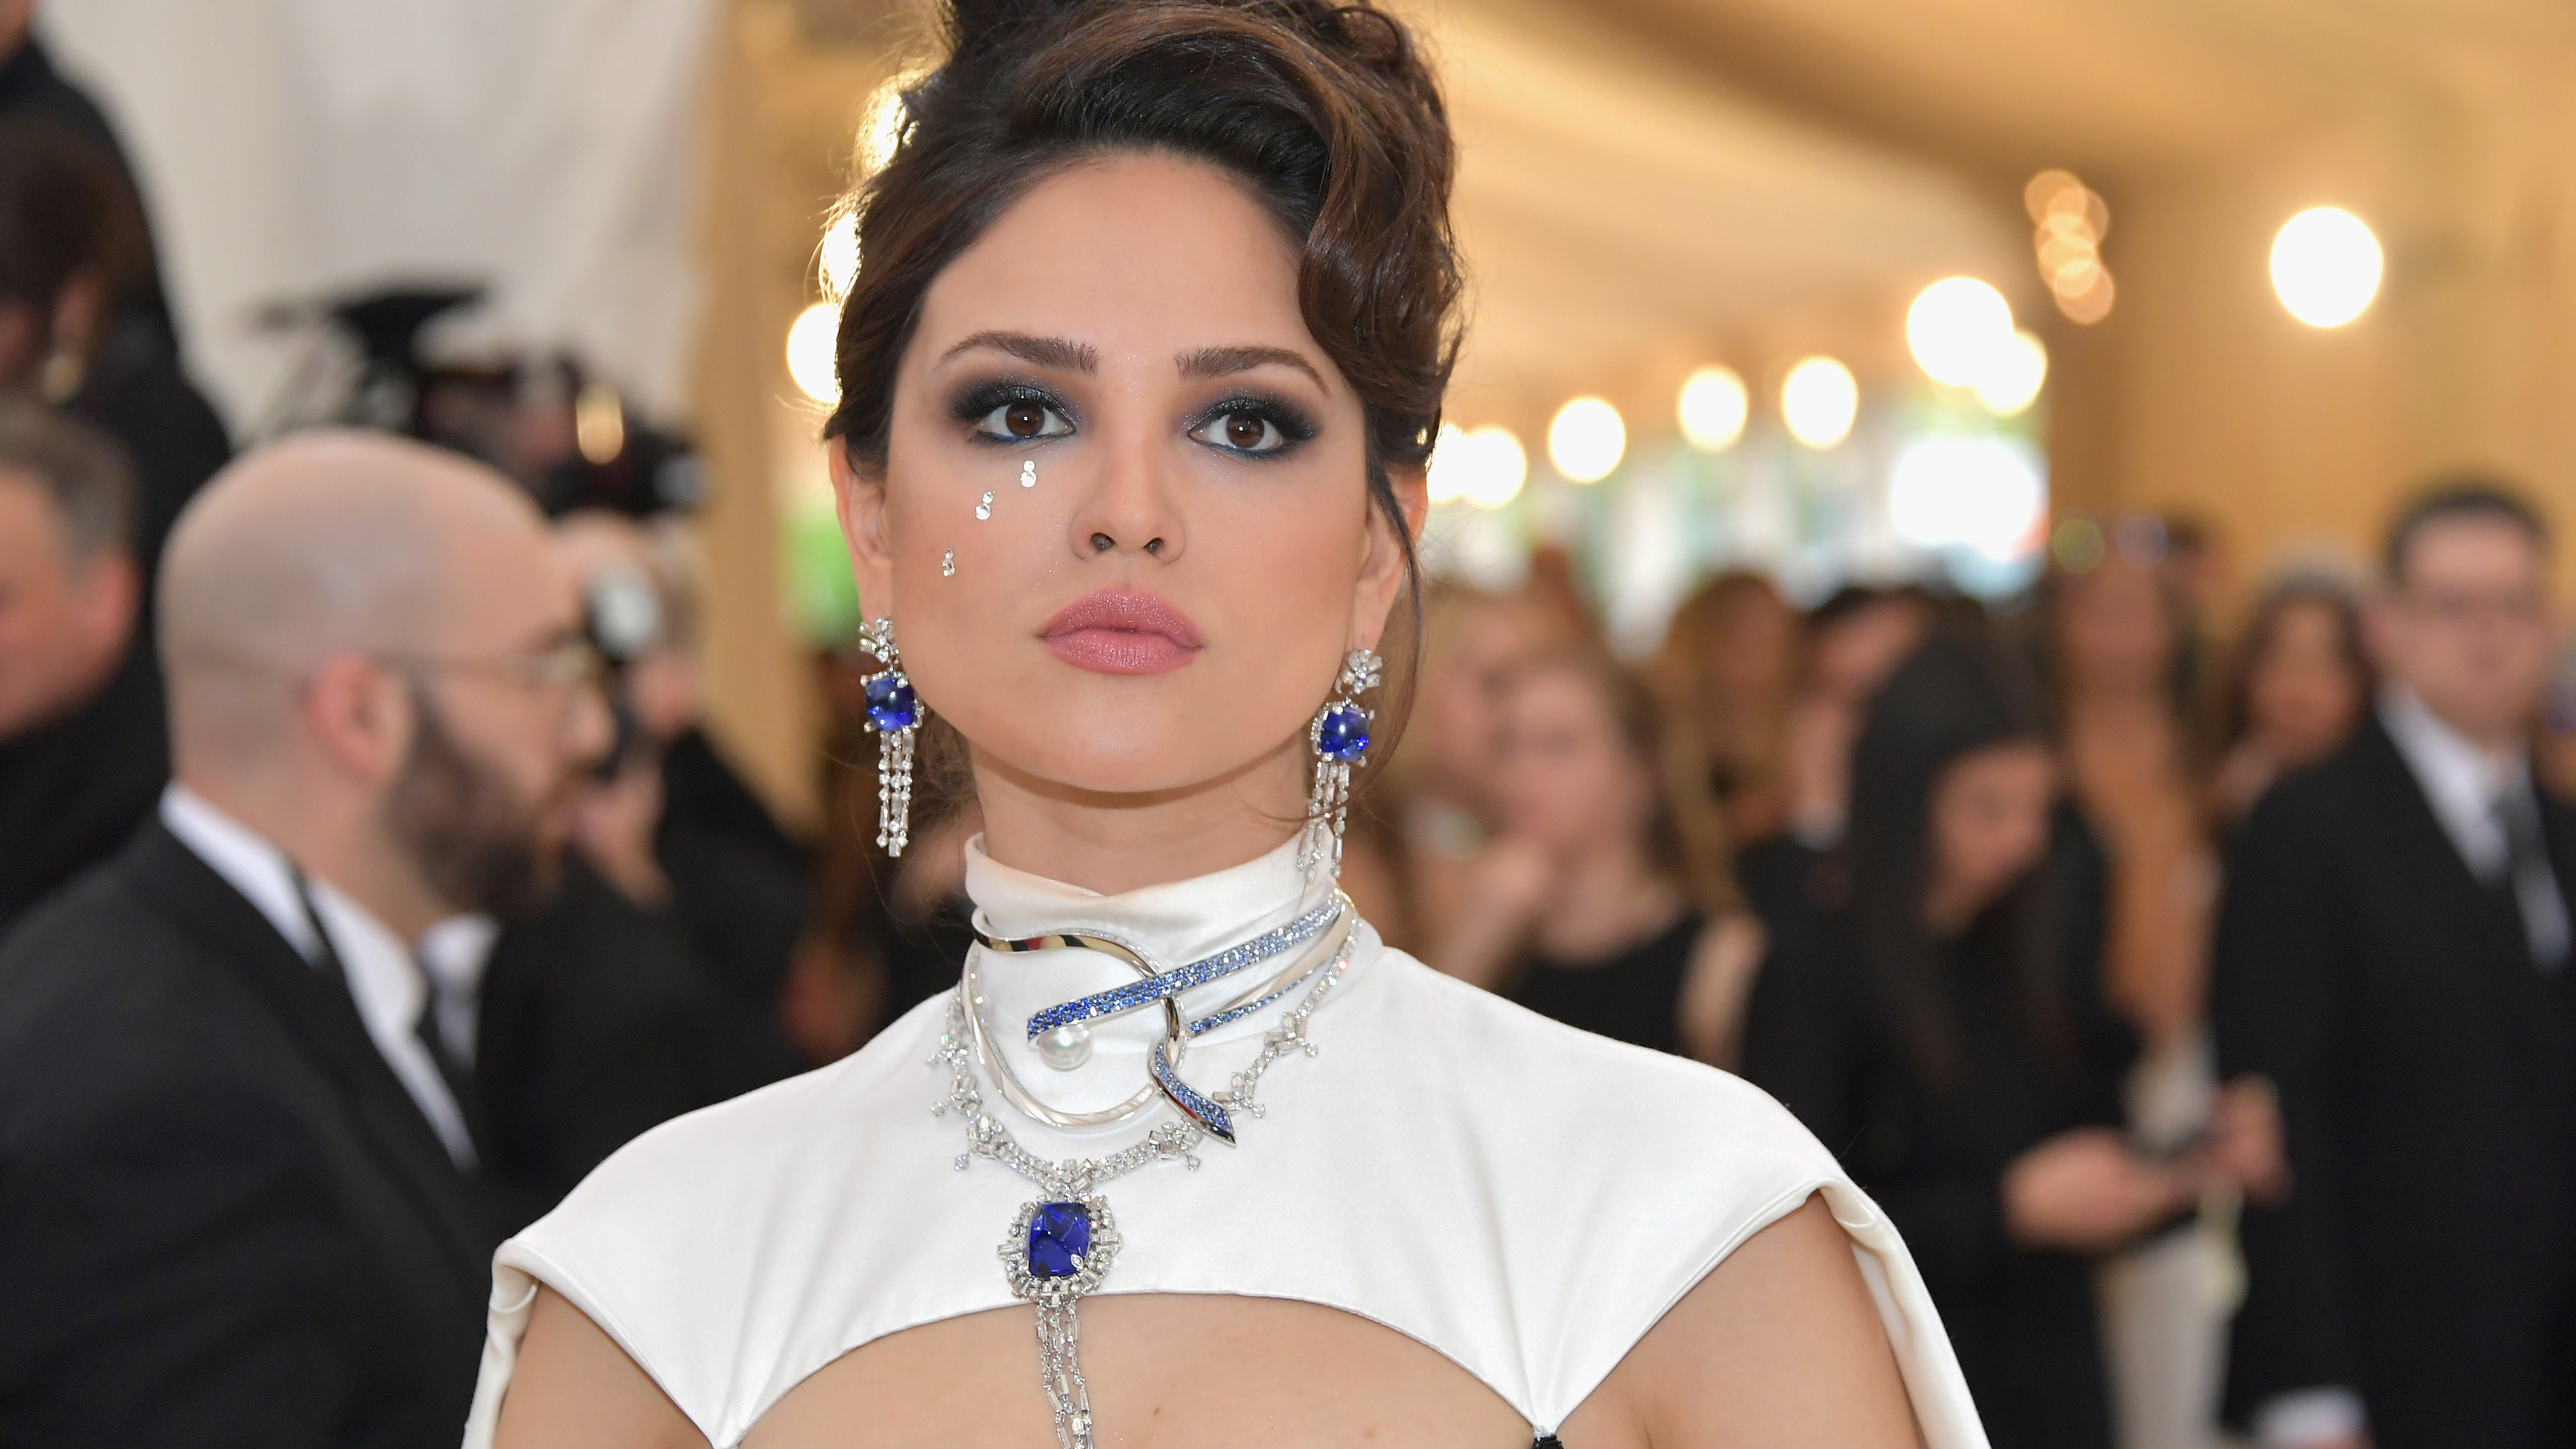 eiza gonzalez at met gala 1536946904 - Eiza Gonzalez At Met Gala - music wallpapers, hd-wallpapers, girls wallpapers, eiza gonzalez wallpapers, celebrities wallpapers, 5k wallpapers, 4k-wallpapers